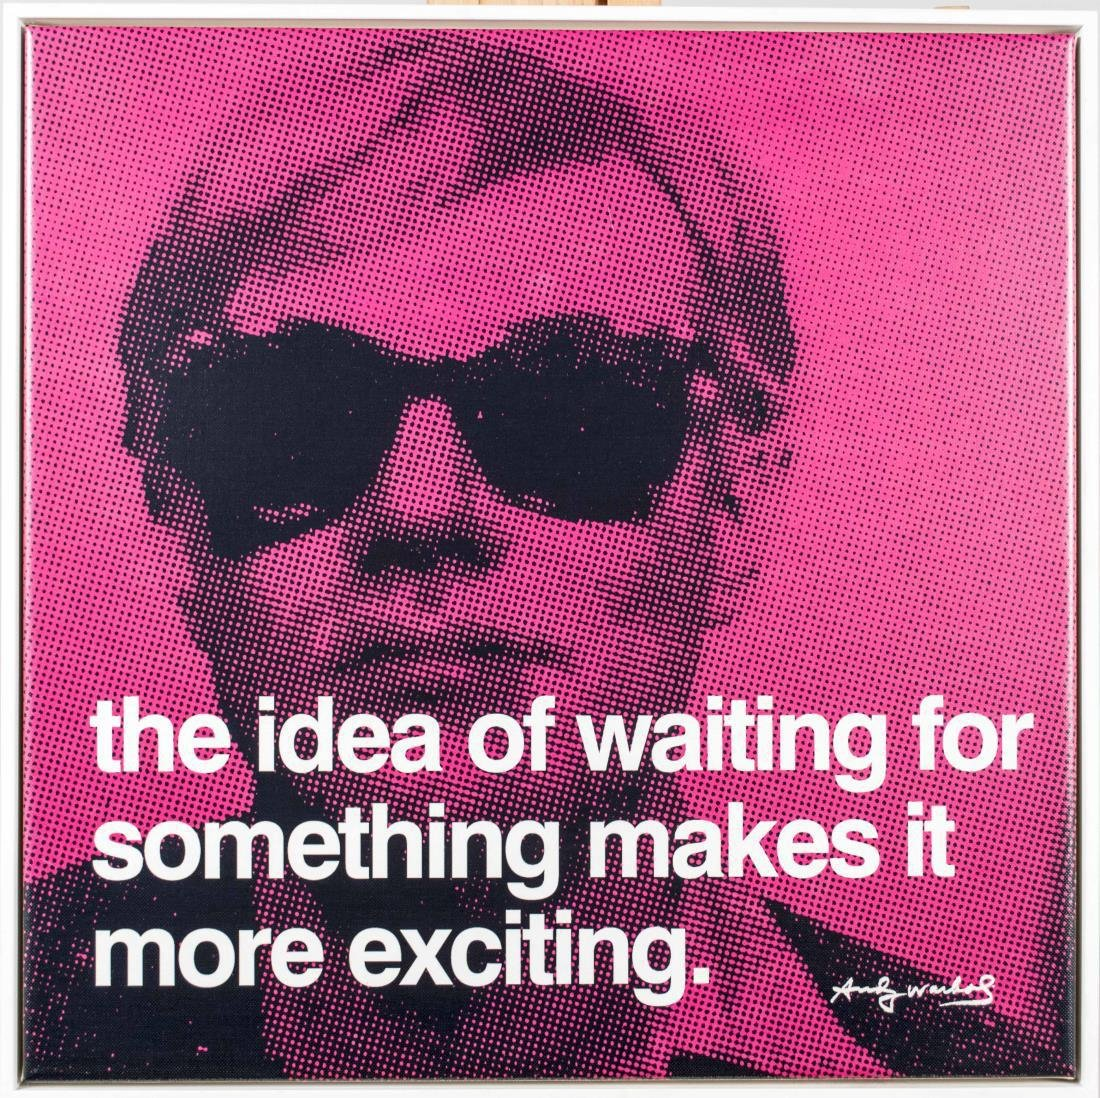 Five Andy Warhol Decorative Posters - 6